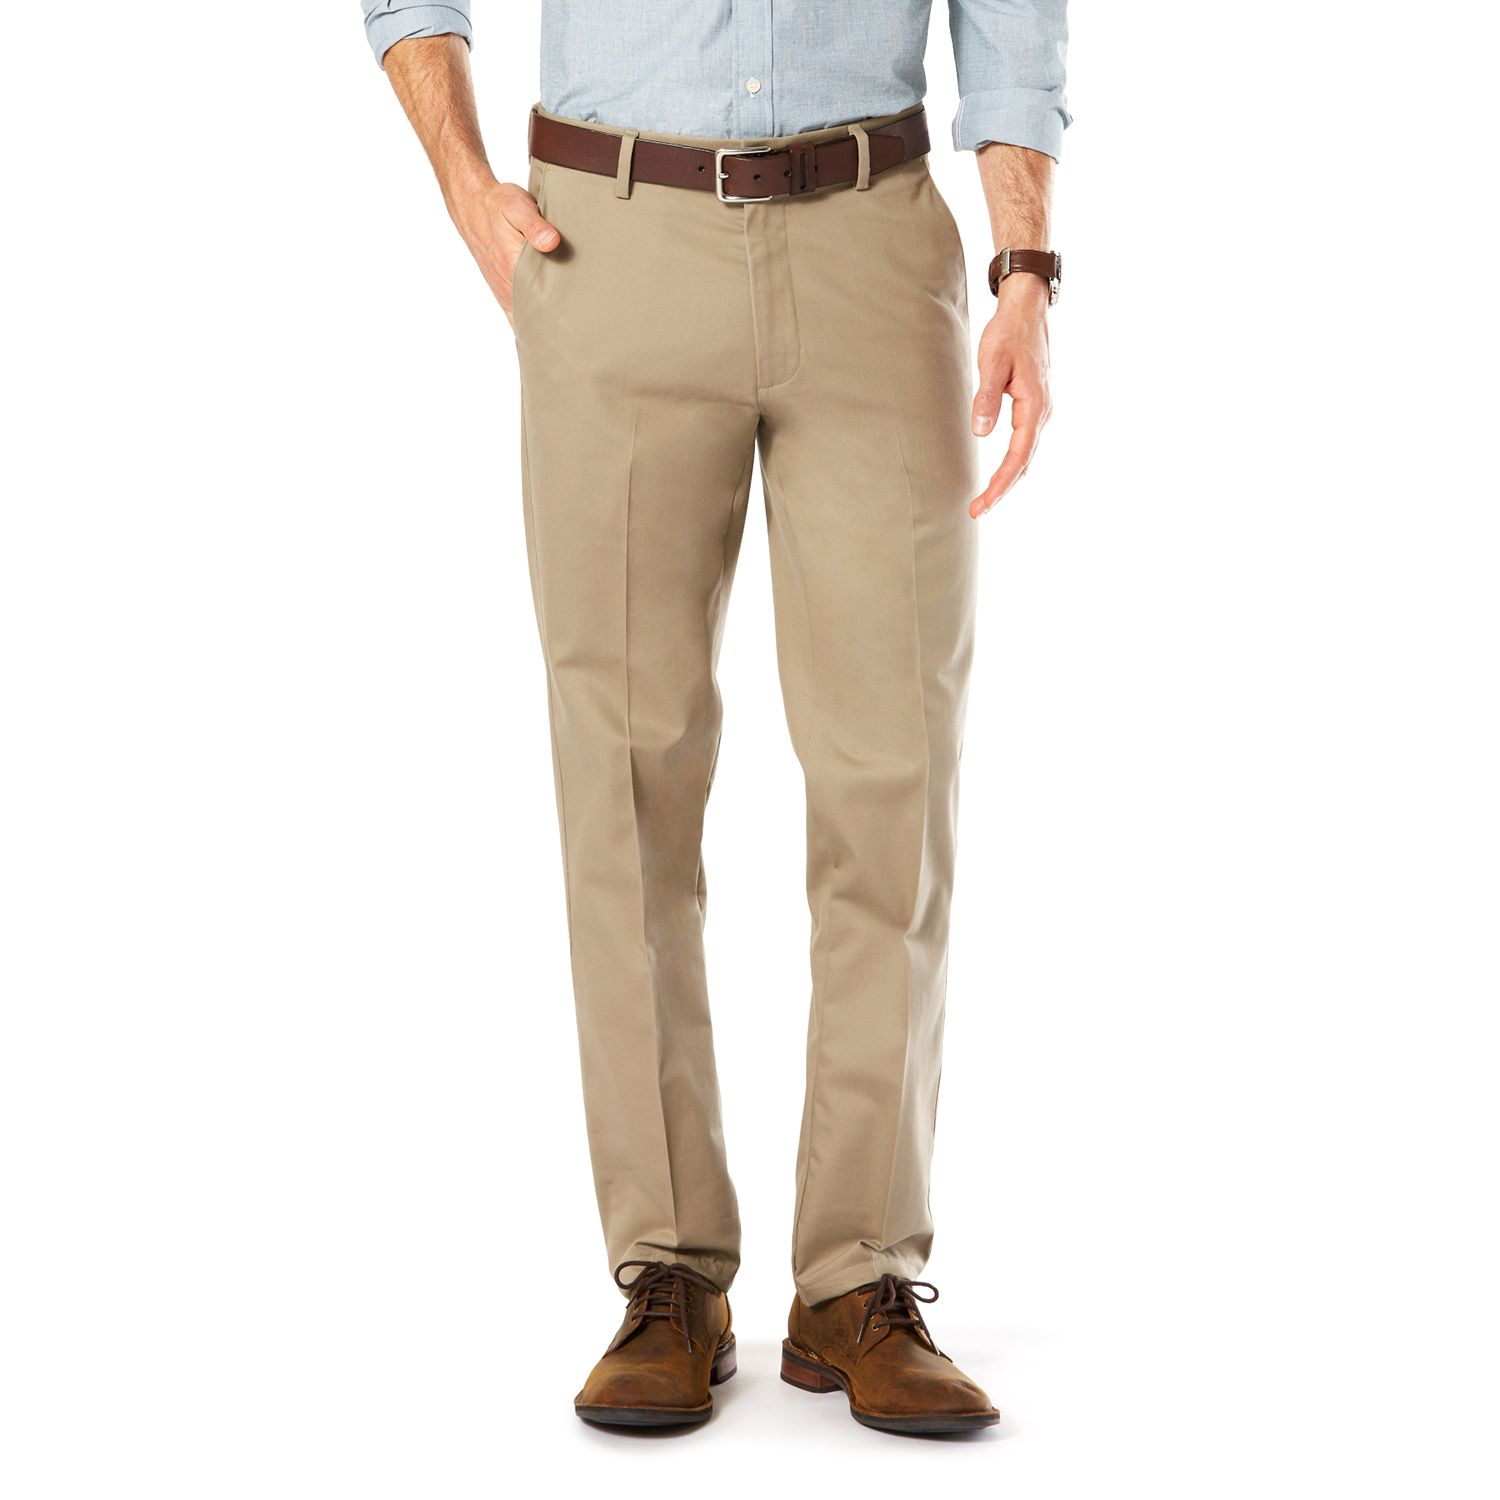 Khaki Slim Fit Pants TjnE7cG1